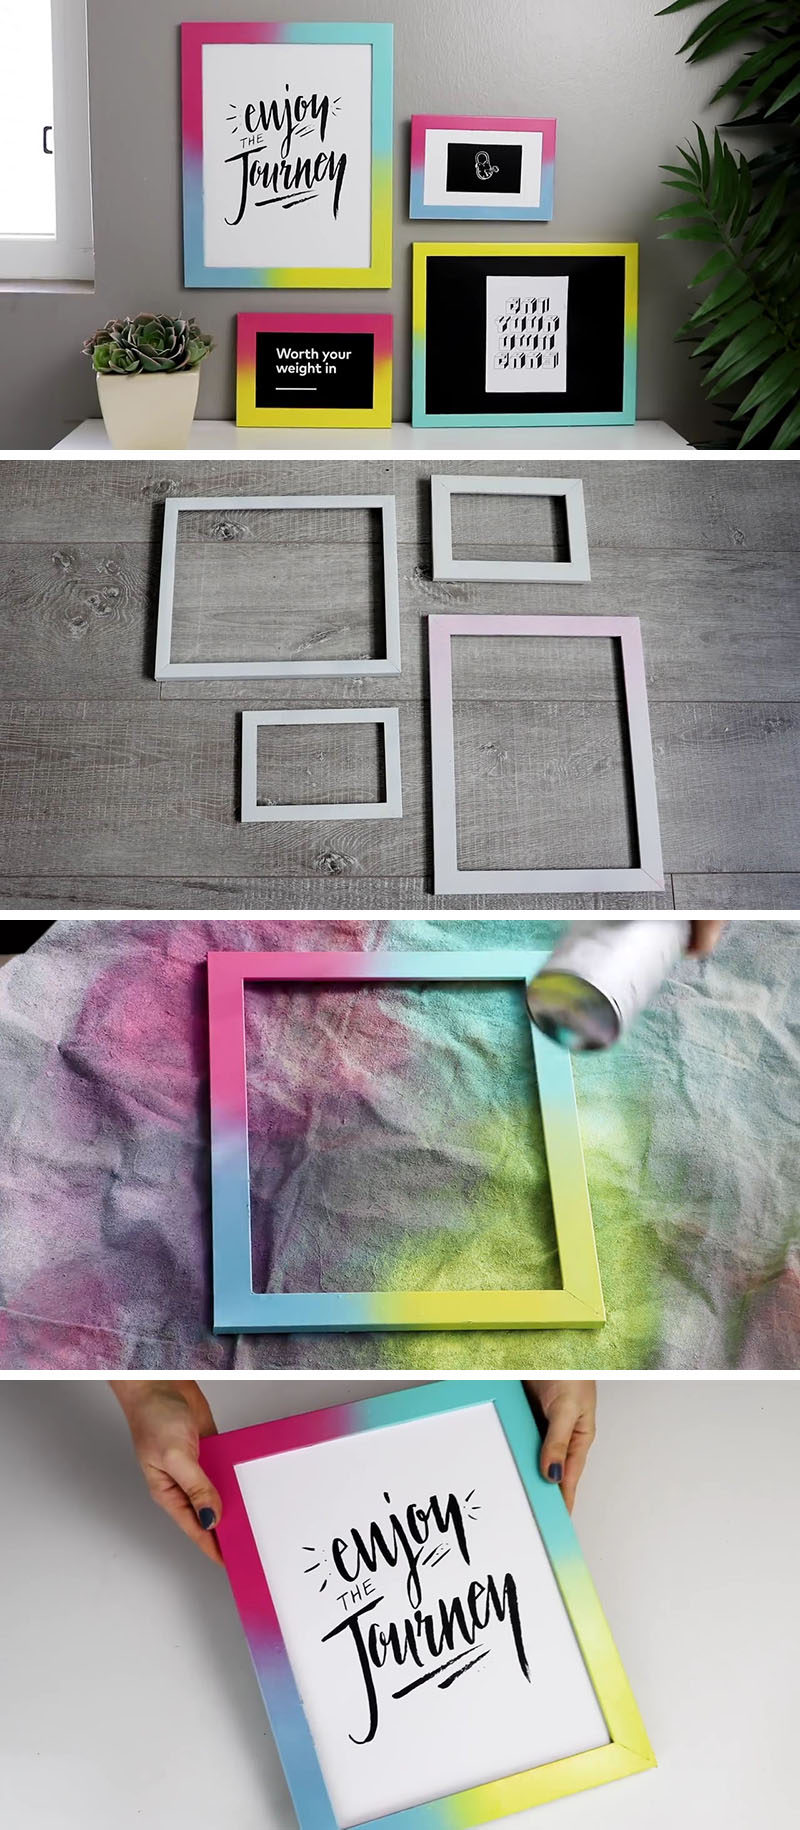 Create your own easy DIY colorful gallery wall by spray painting simple white frames with bright colorful gradients, and pair them with simple black and white artwork to keep it all looking contemporary.